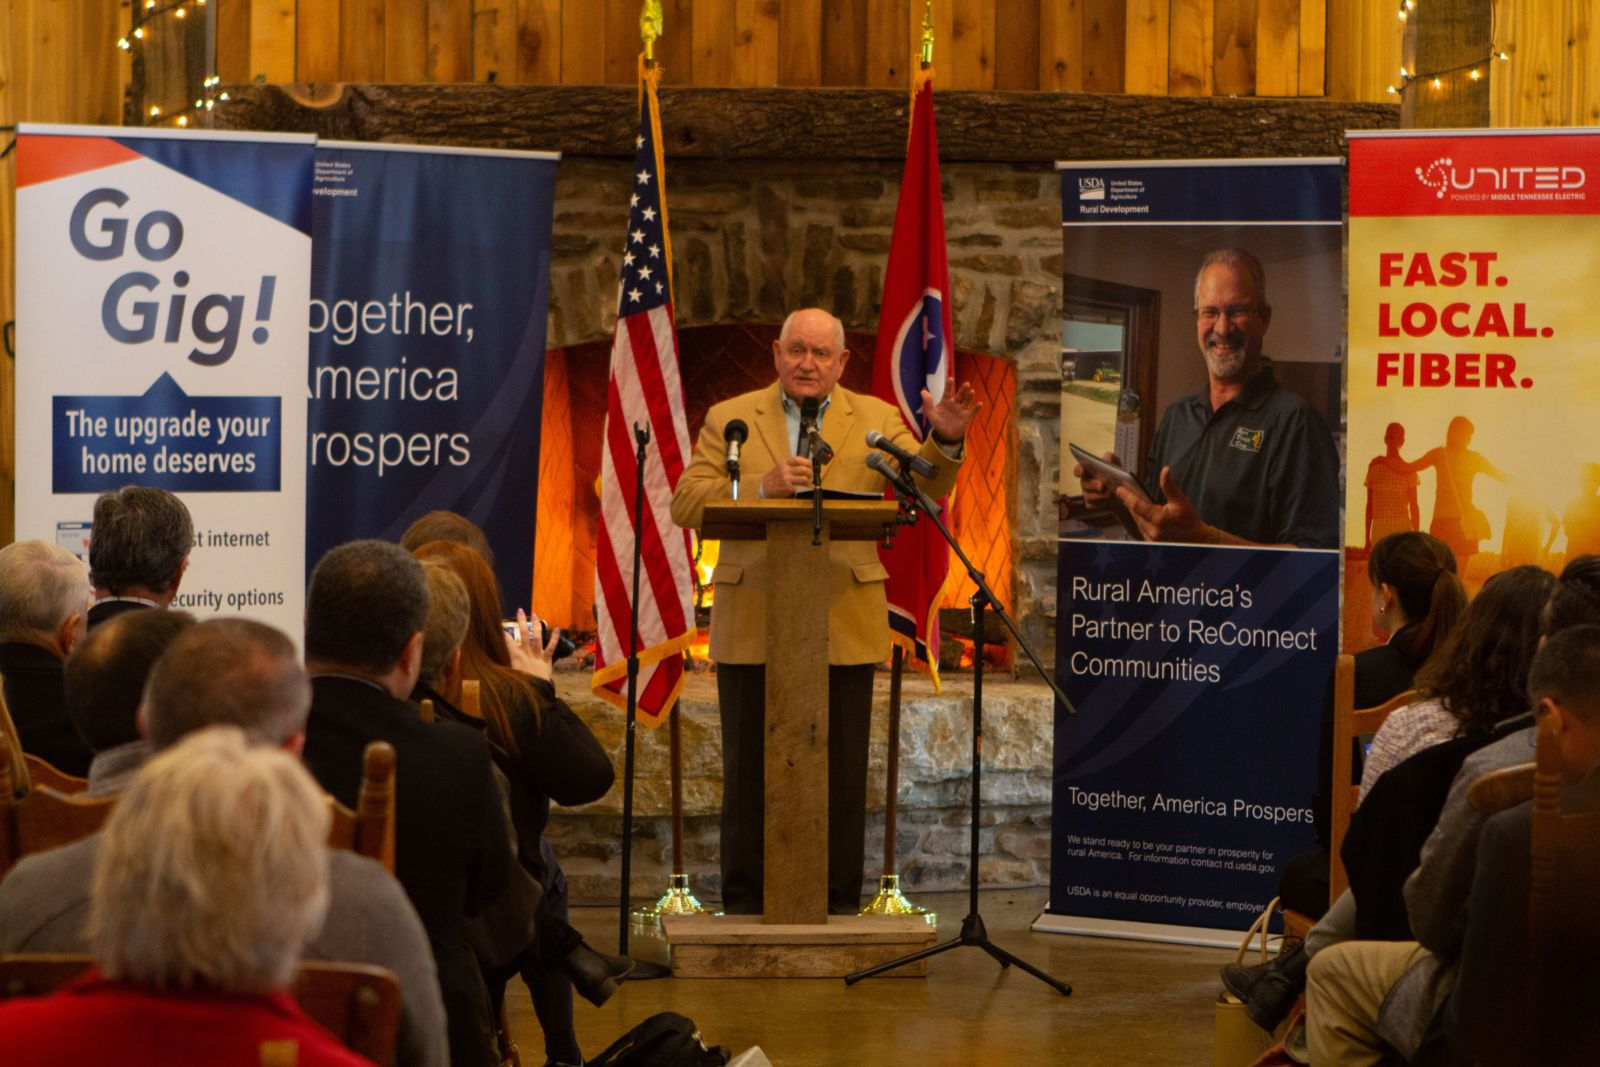 Secretary of Agriculture Sonny Perdue speaking at press conference